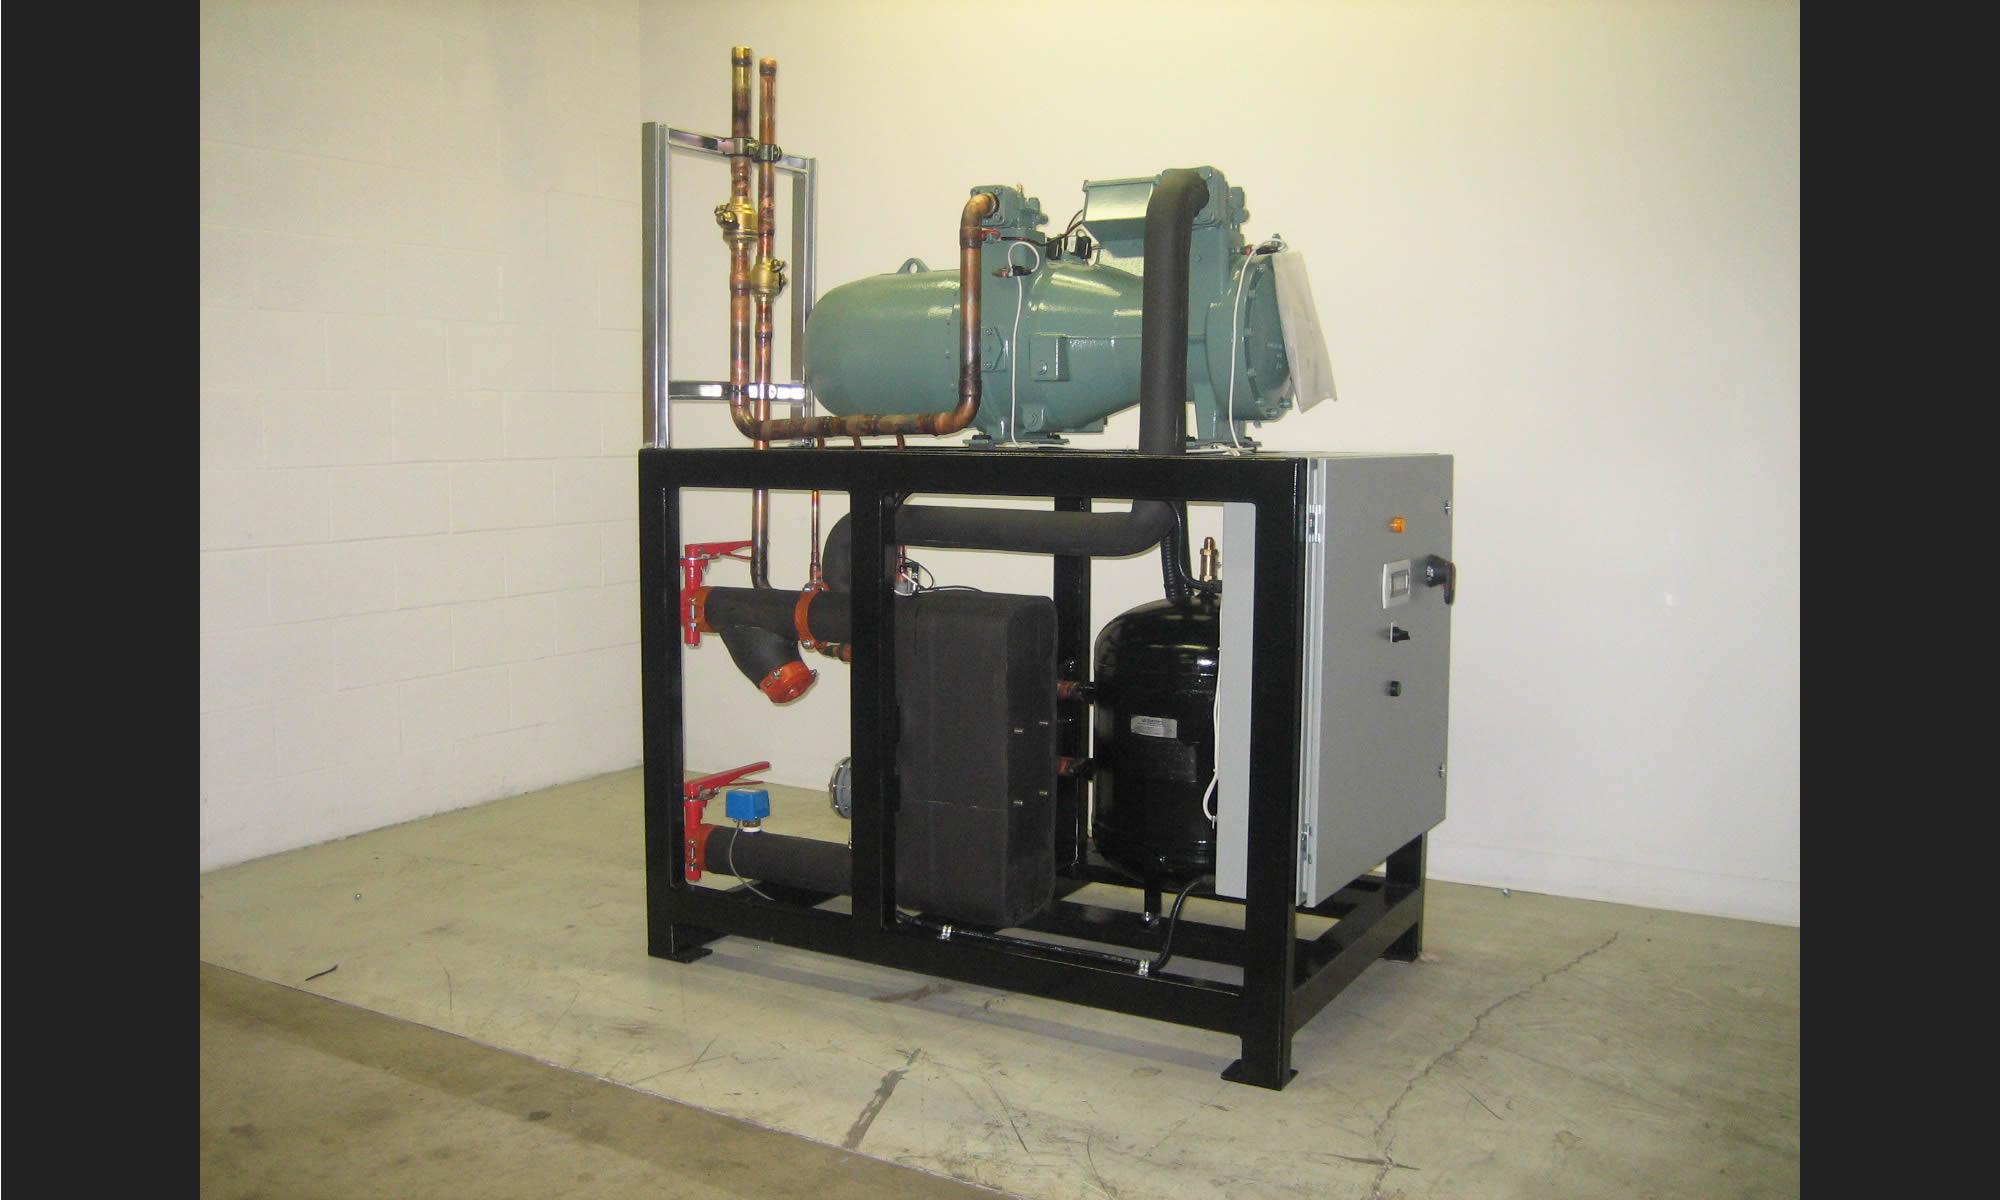 Condenserless Screw Modular Chillers